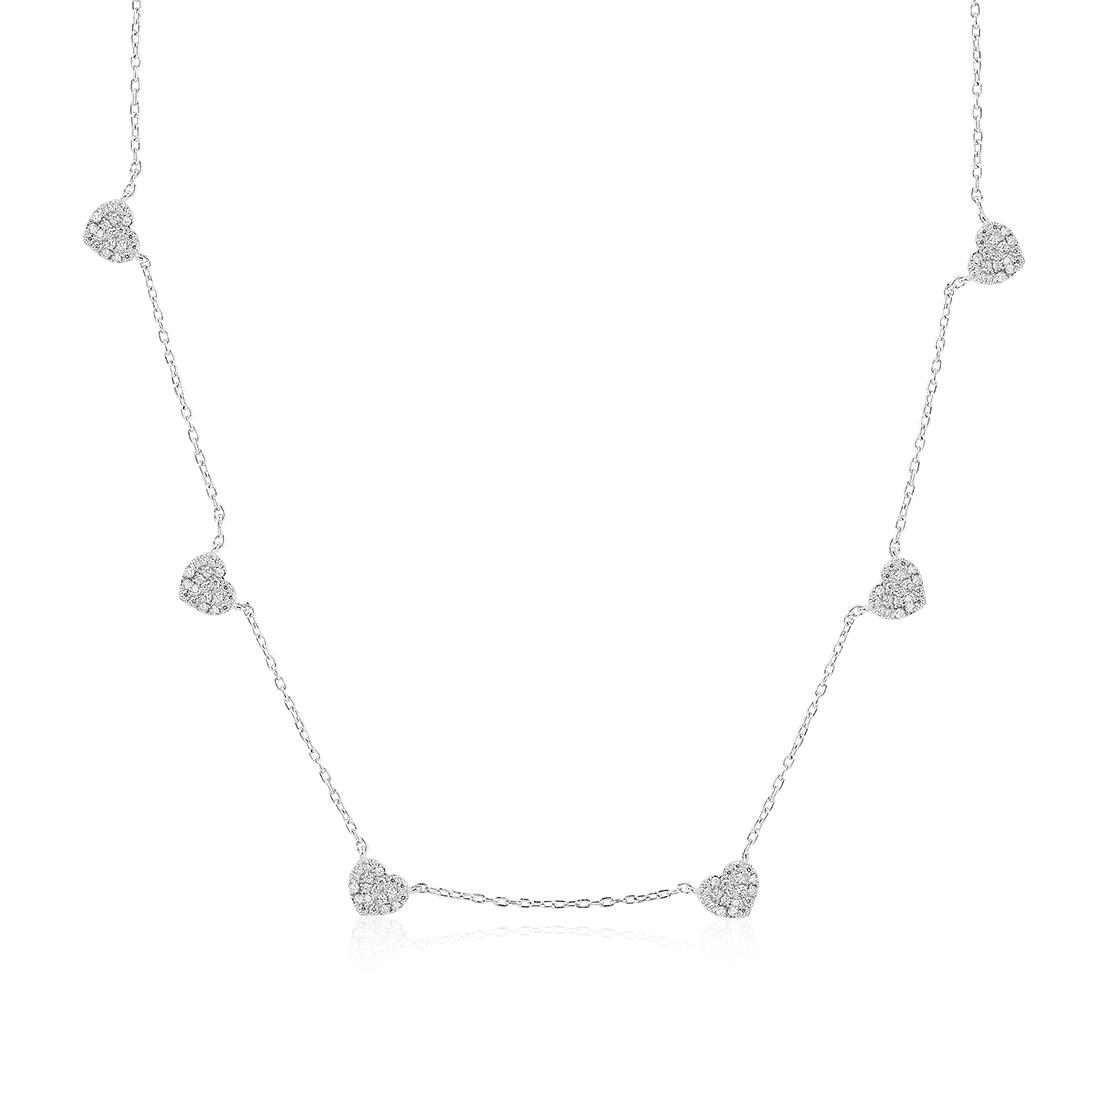 Forever Hearts Silver Necklace - High Street Jewelry